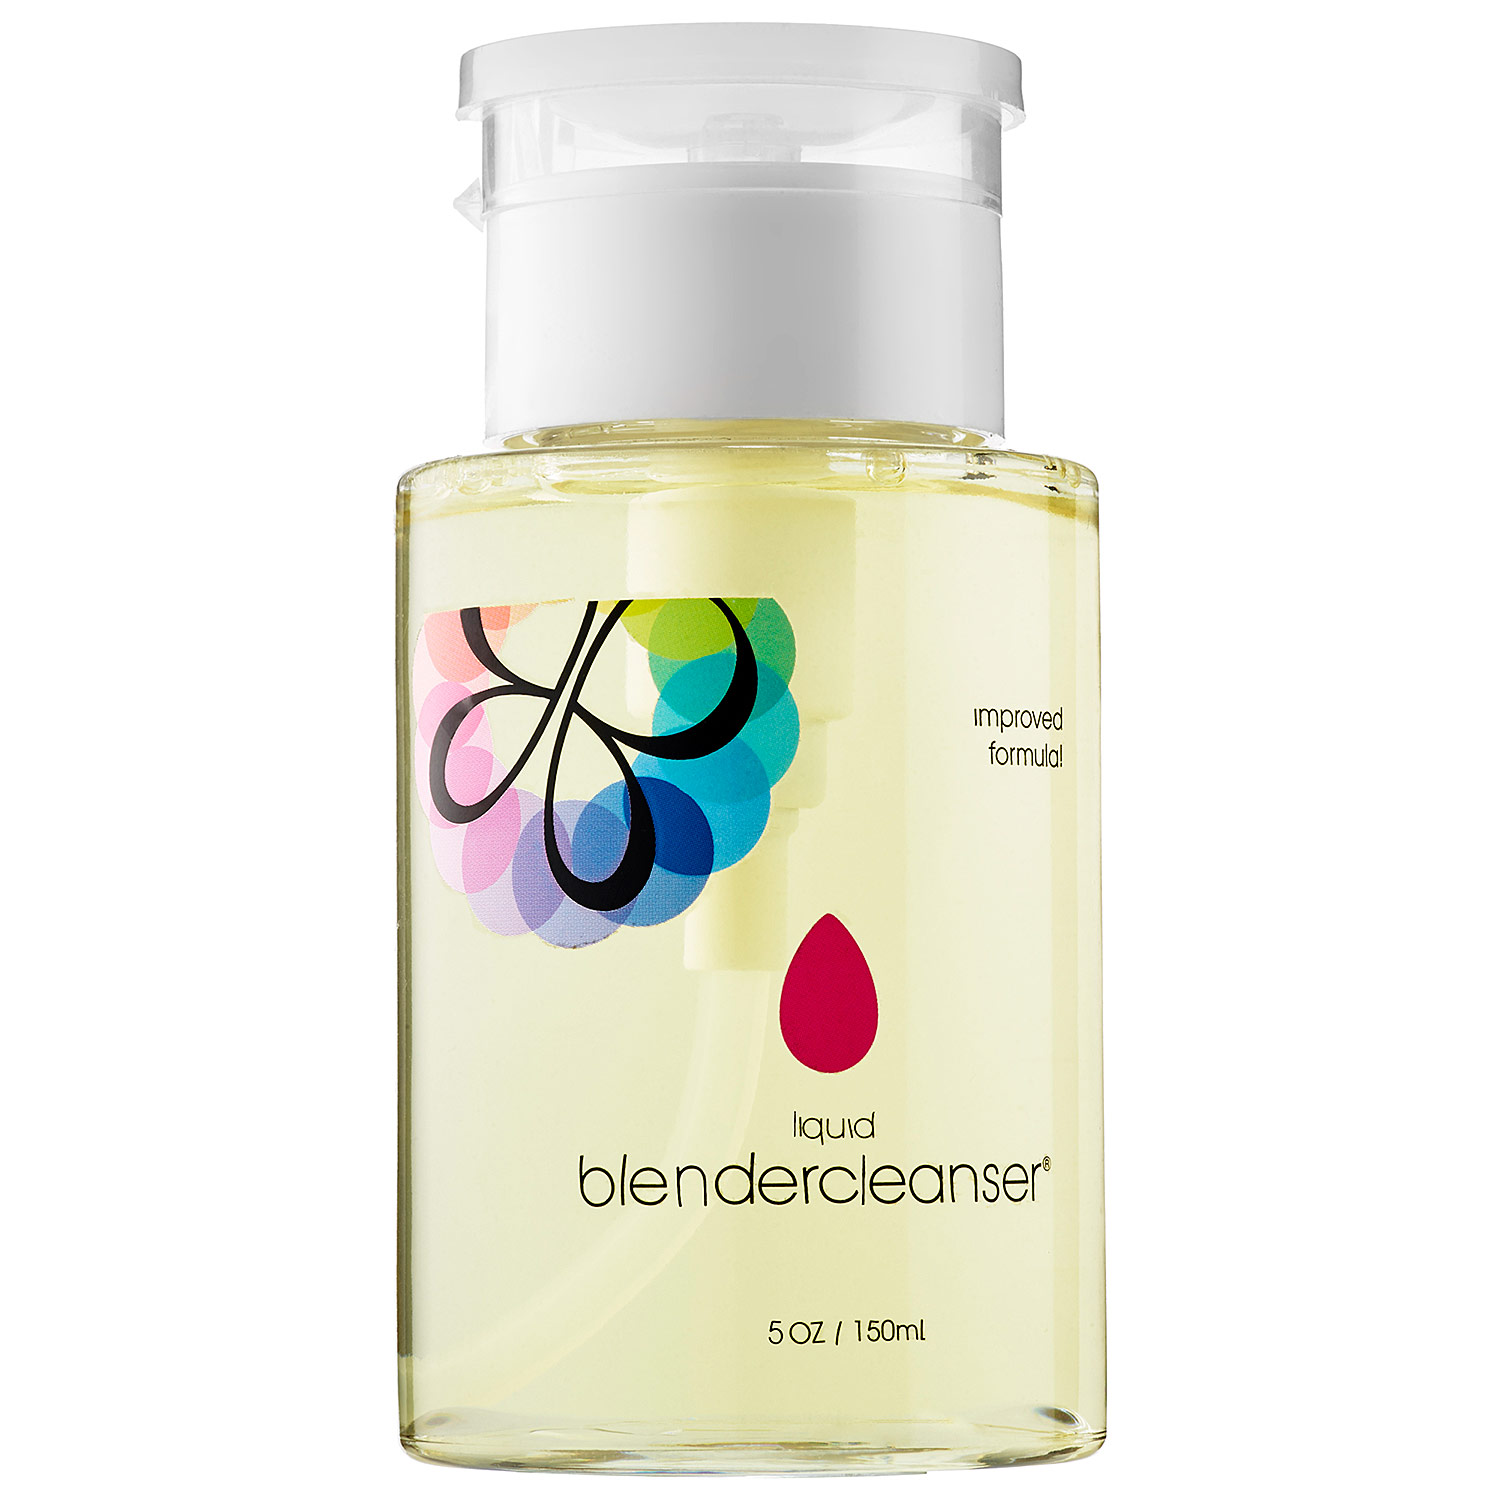 beautyblendercleanser